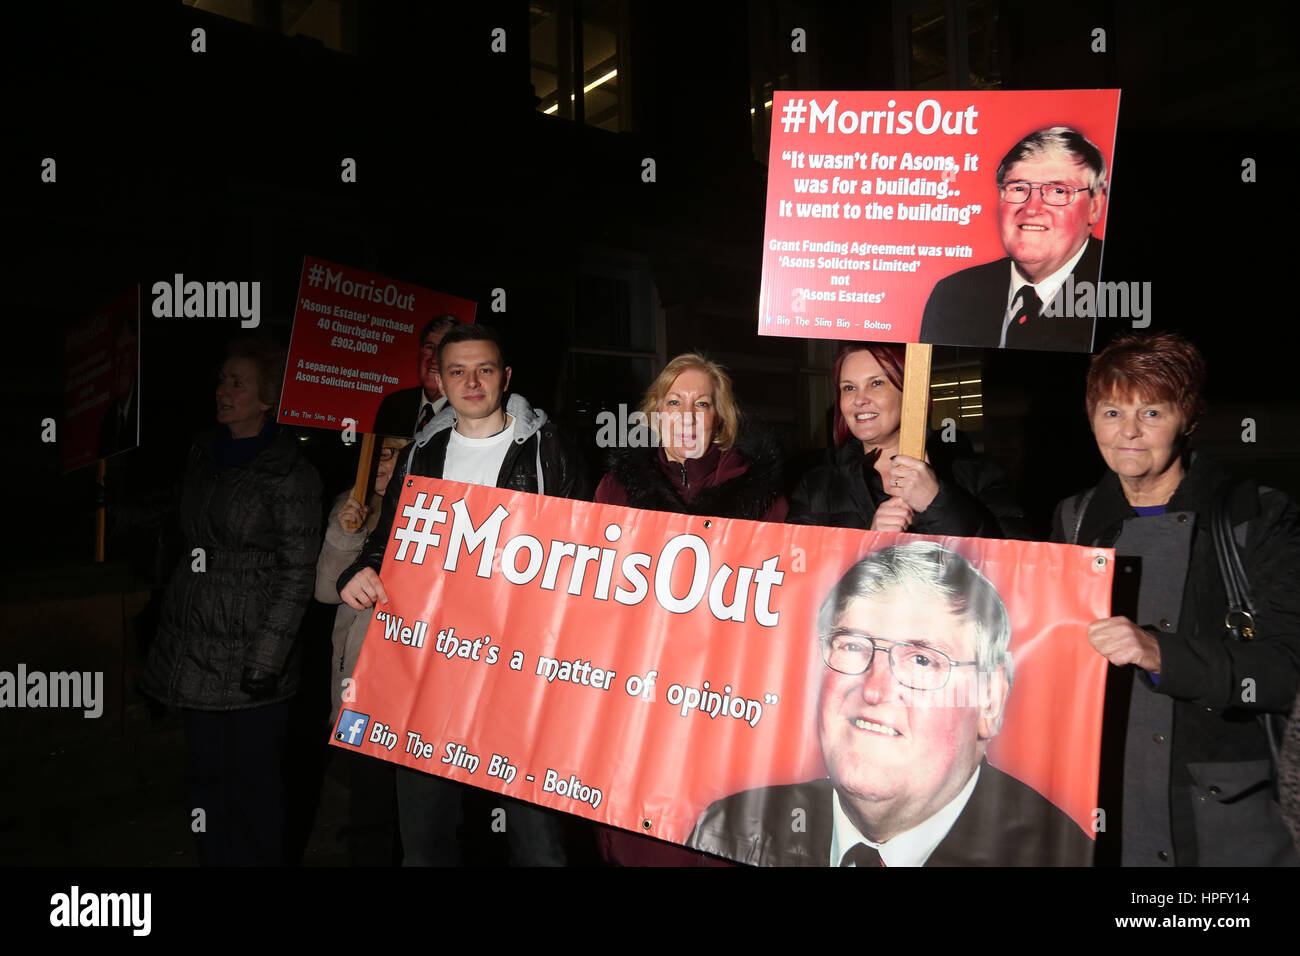 Bolton, UK. 22nd February 2017. Protesters calling for the resignation of council leader Councillor Morris. The - Stock Image